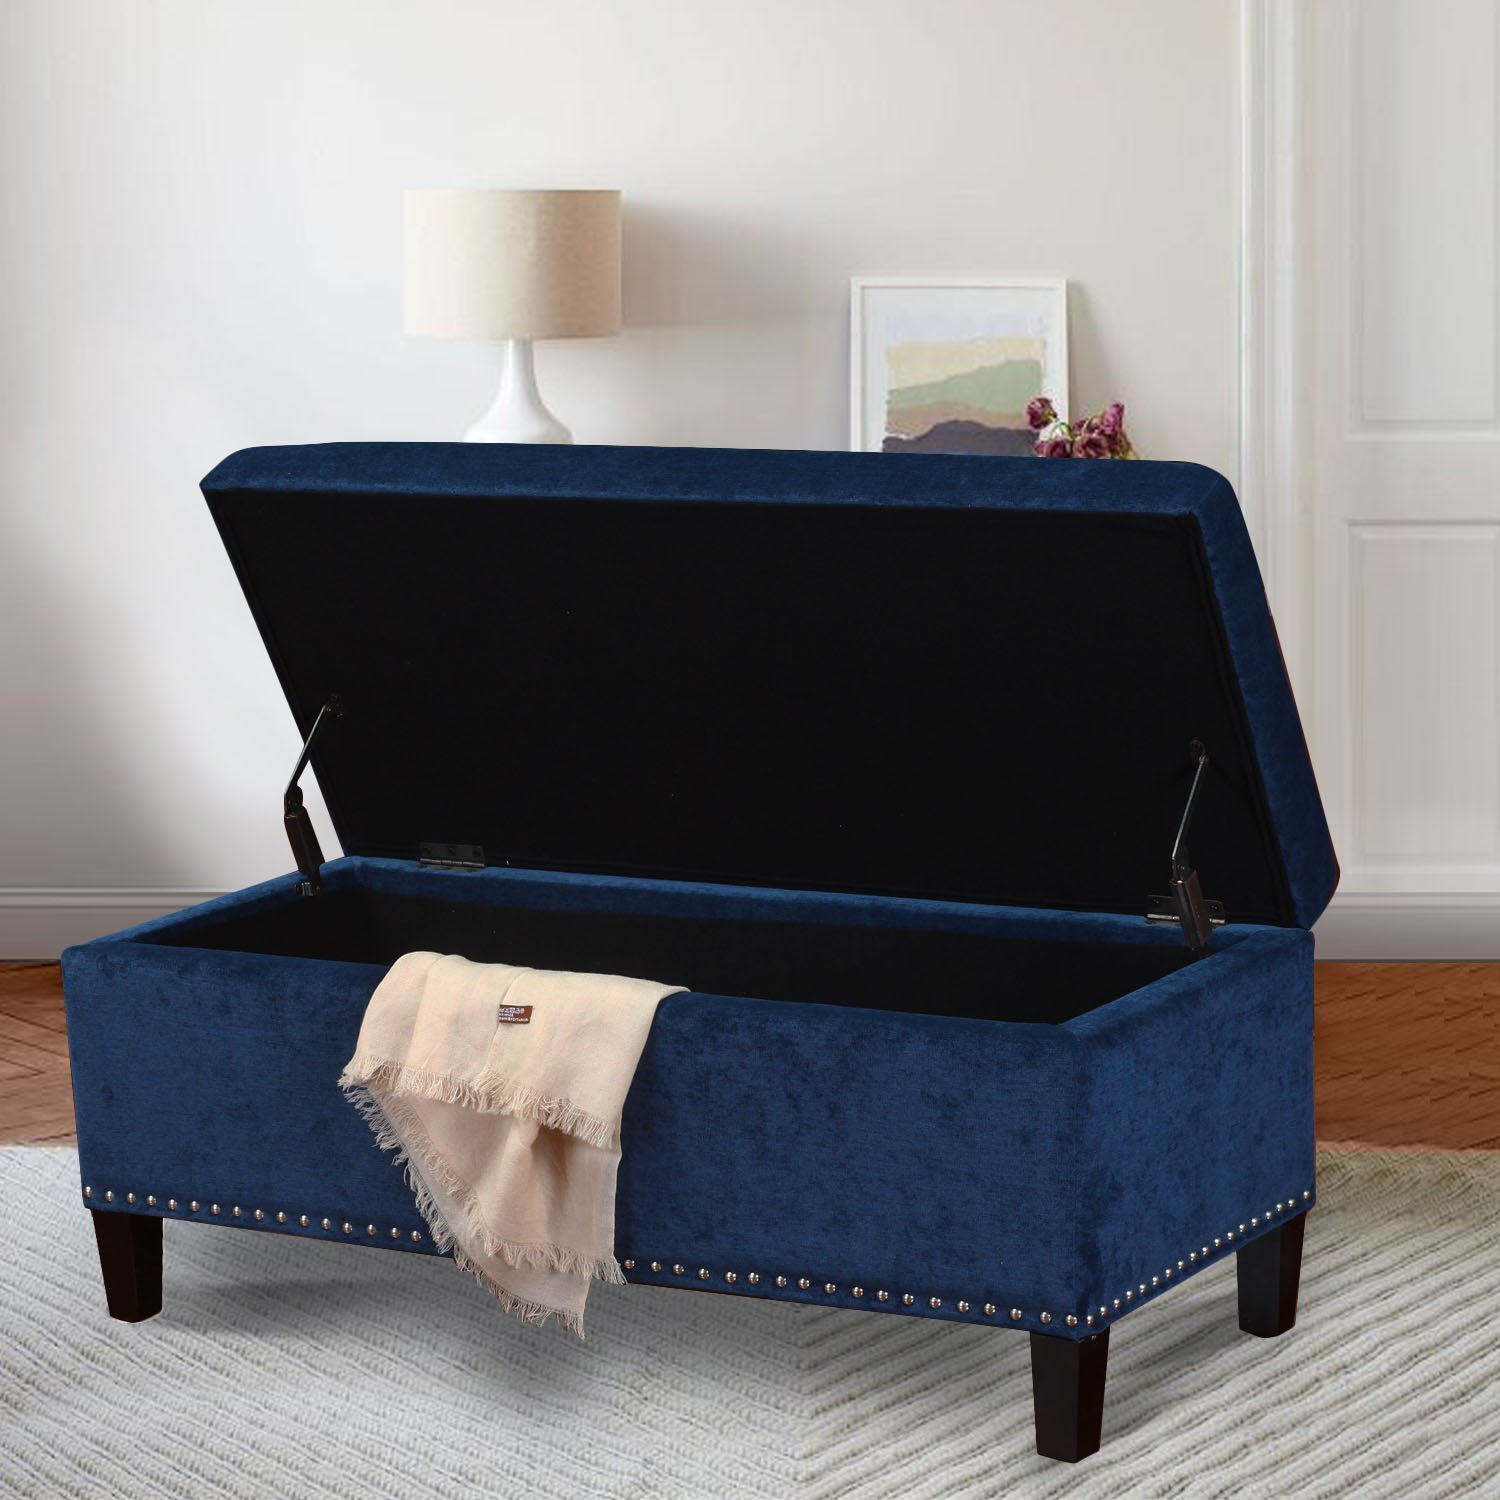 Well-liked Adeco Royal Blue Microfiber Rectangular Tufted Storage Bench  VM52